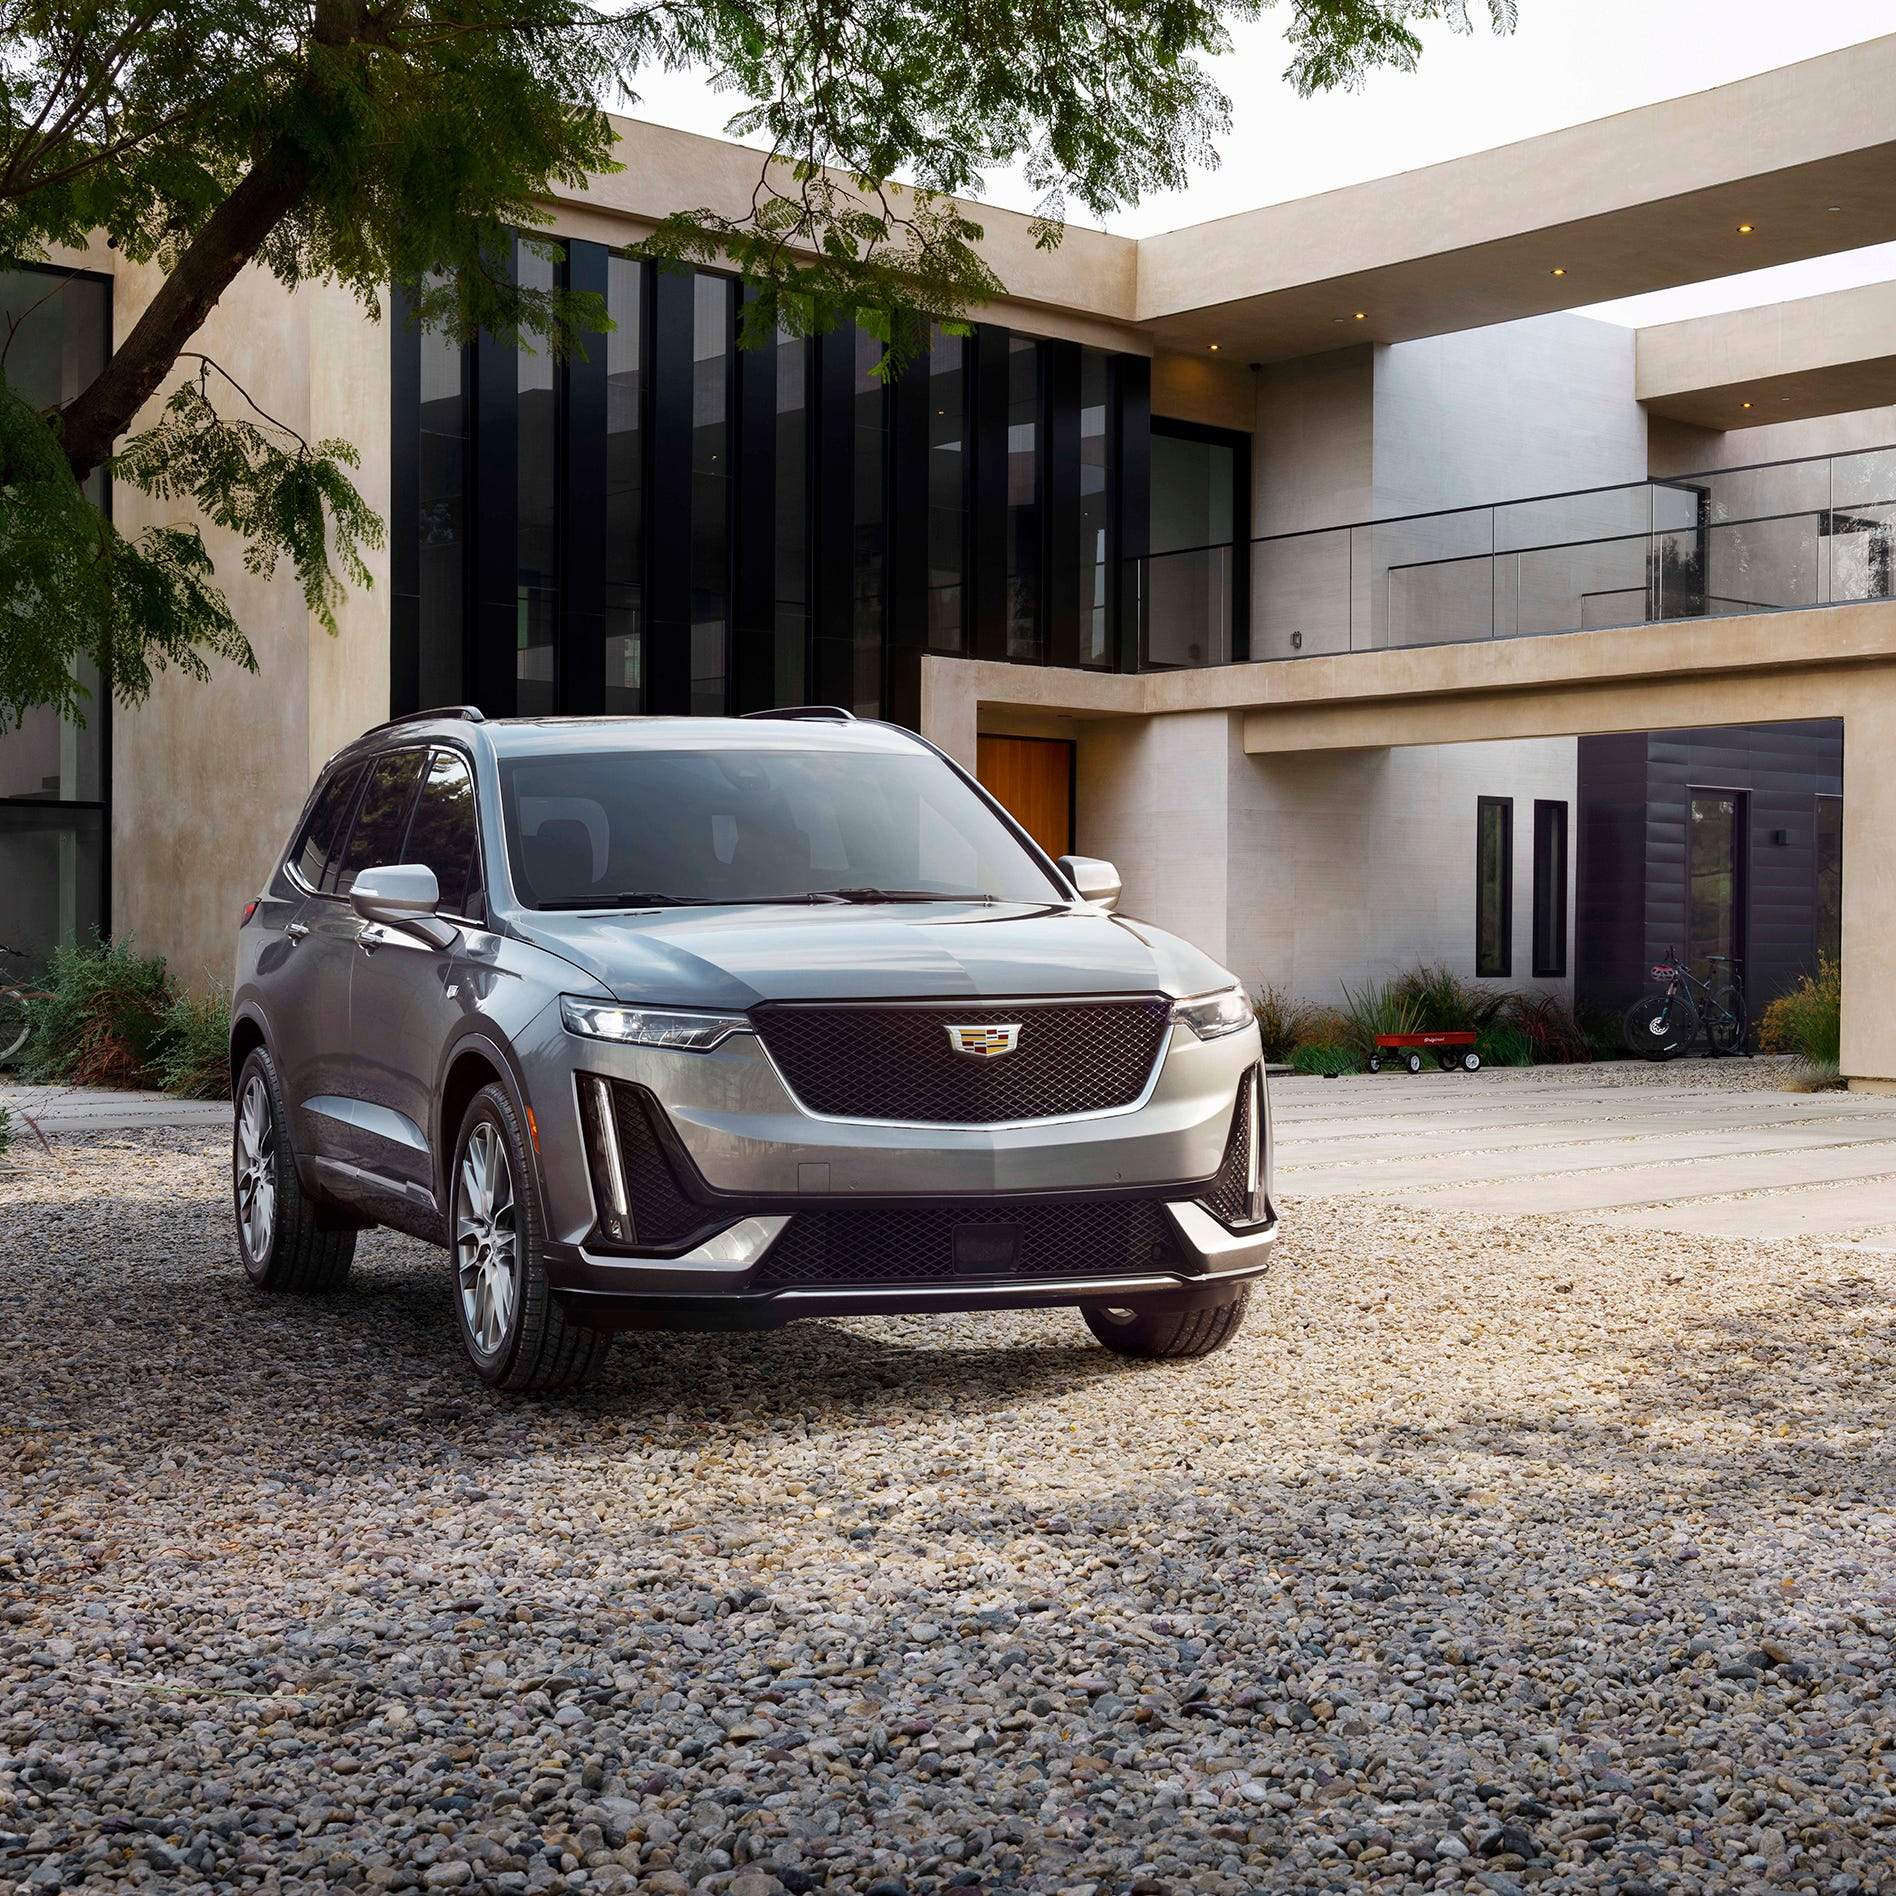 GM unveils Spring Hill plant's latest model: Cadillac XT6 SUV